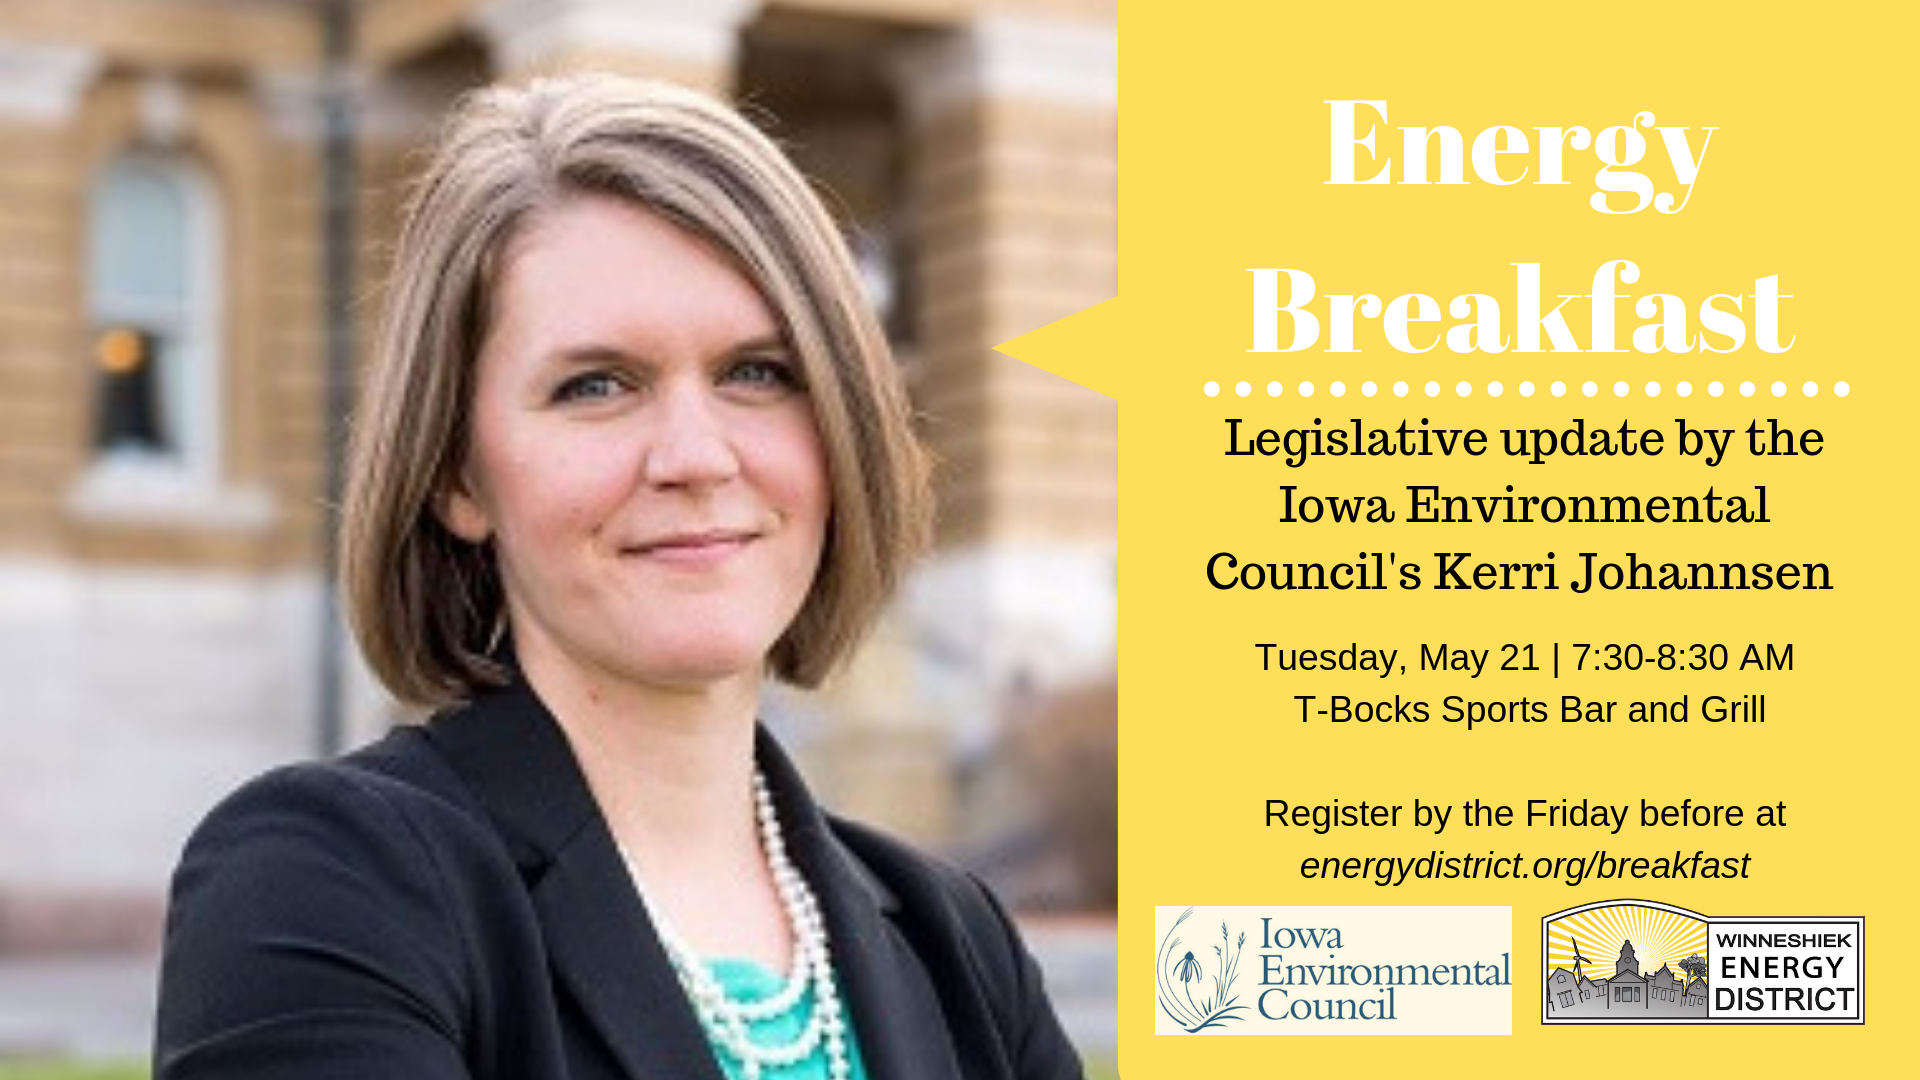 b3a35e980ff3 The Monthly Energy Breakfast series from the Winneshiek Energy District  welcomes Kerri Johannsen from the Iowa Environmental Council to Decorah on  Tuesday